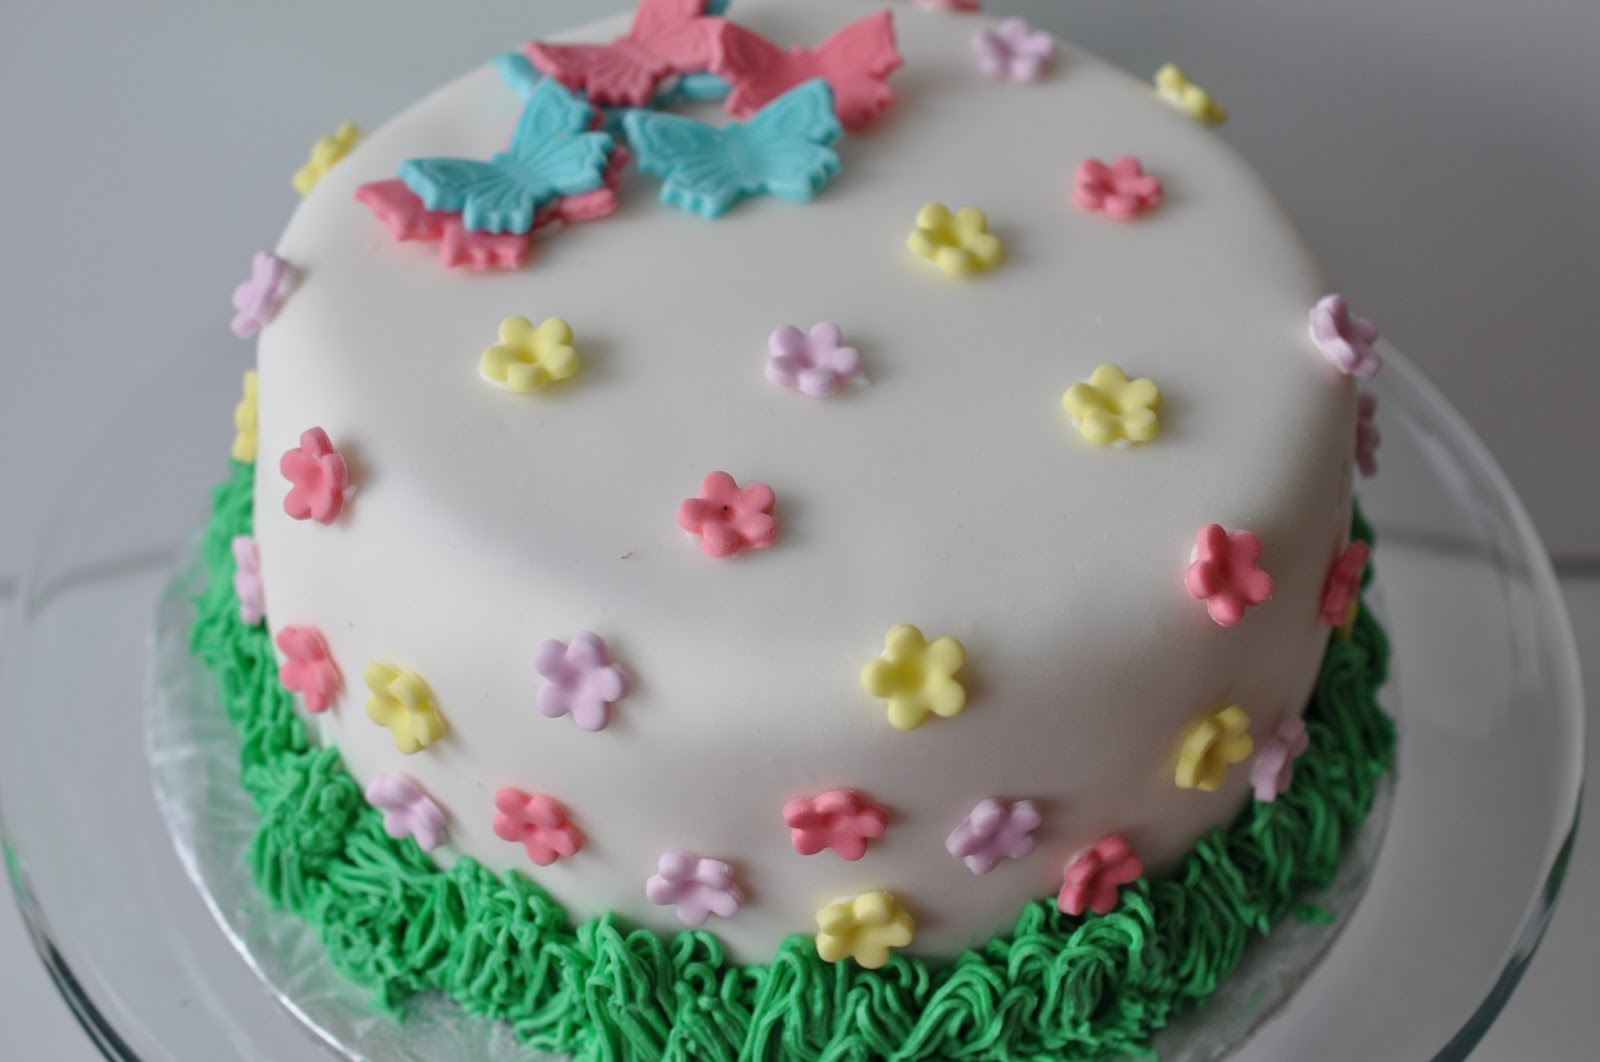 Easy Birthday Cake Decorating Ideas For A Girl